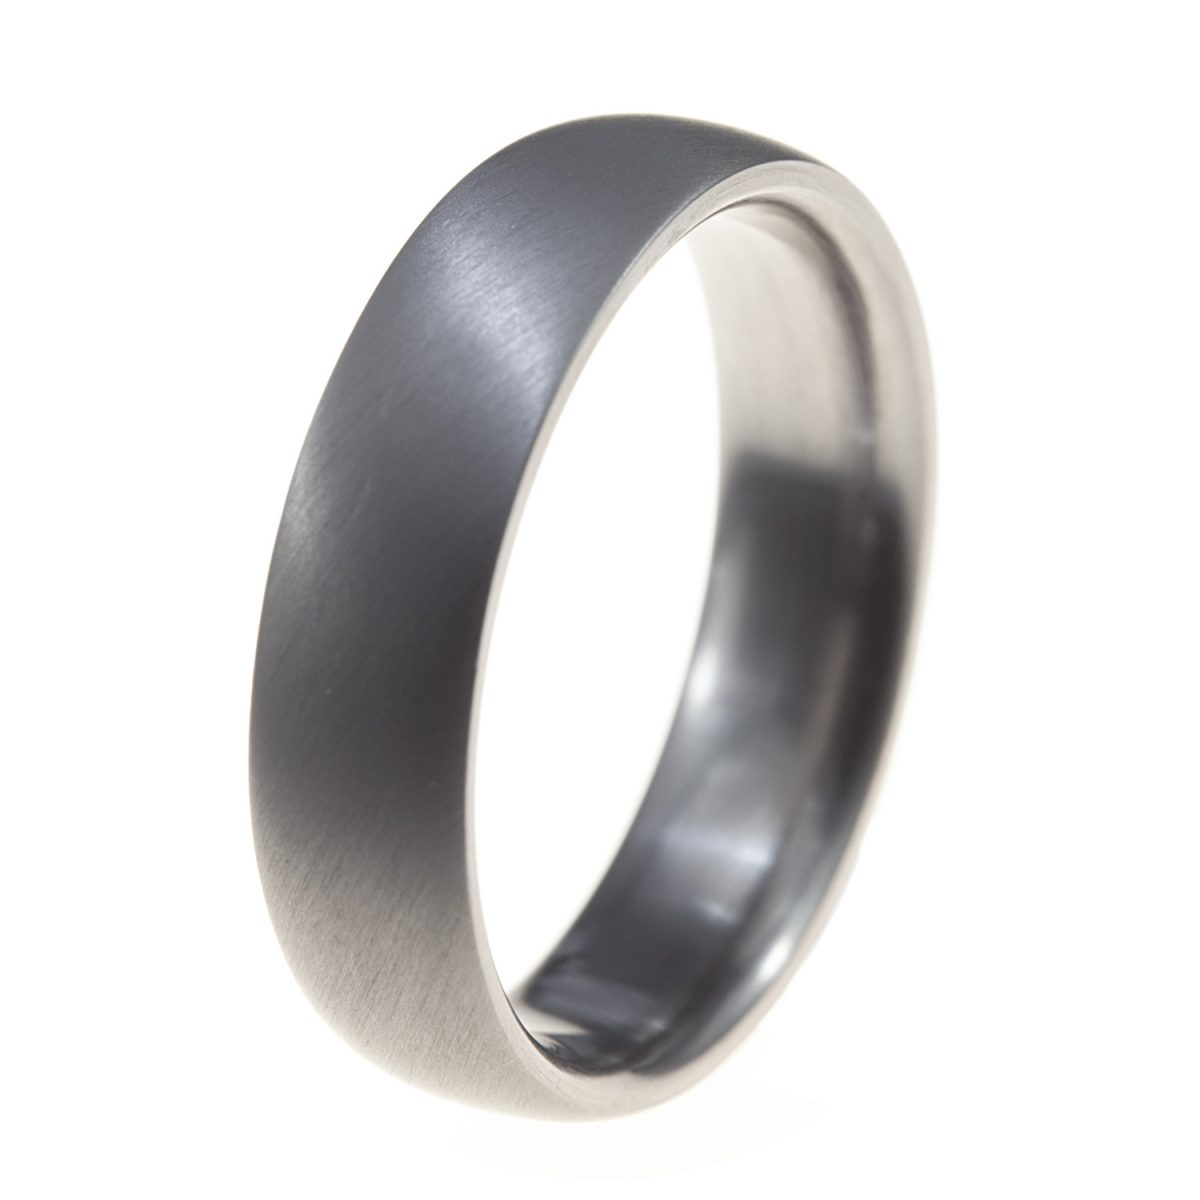 Tantal Ring für Herren | Herrenring Men's Collection No:4